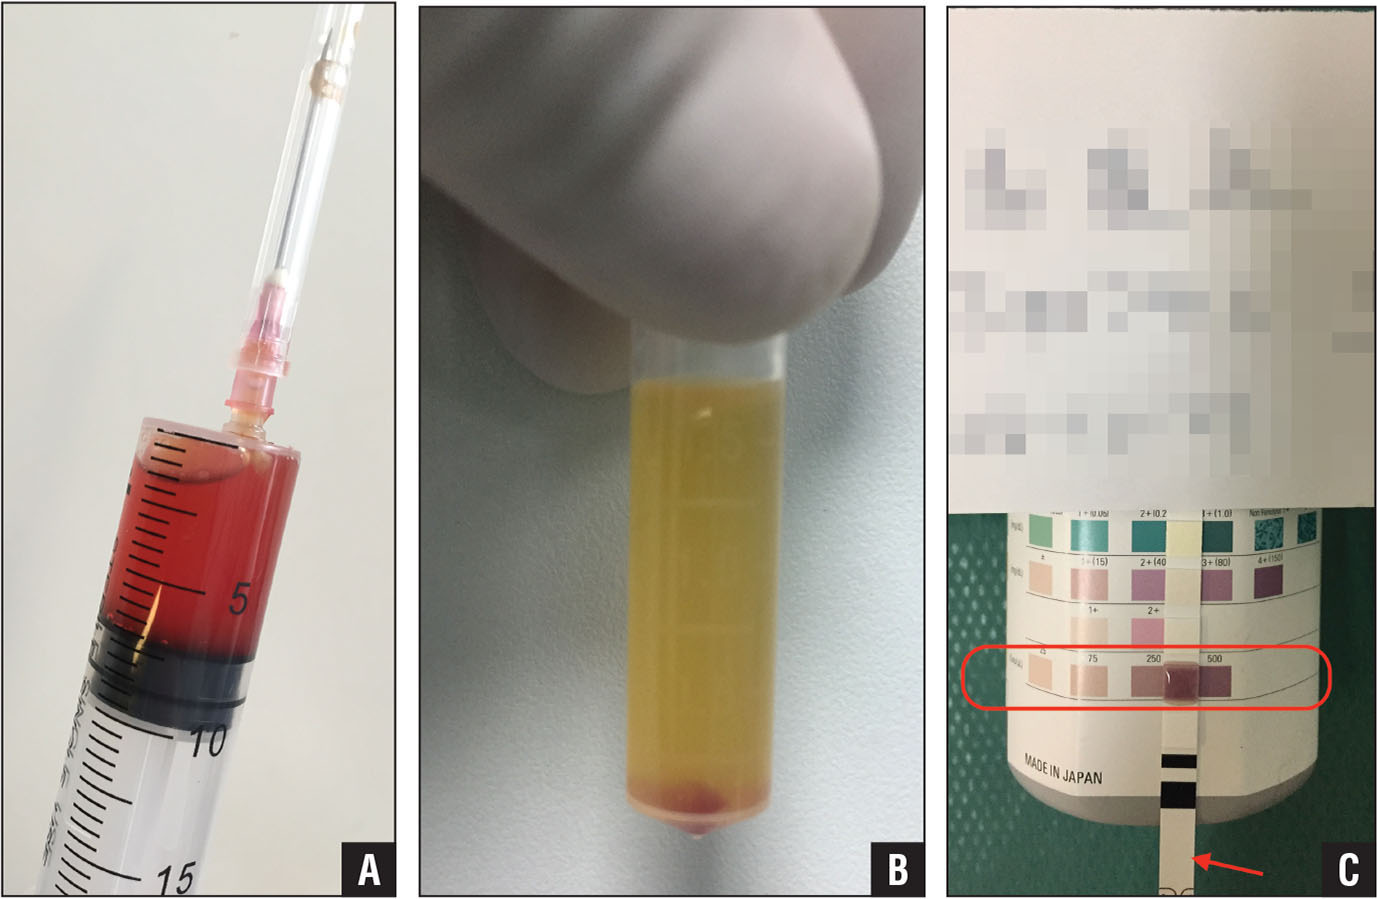 Blood-stained synovial fluid aspirated from a joint, which could not be used for the leukocyte esterase (LE) strip test directly (A). Erythrocytes were separated by centrifugation. Supernatant was left for the LE strip test (B). After 2 to 3 minutes, the LE strip test pad (arrow) was dark purple (500), indicating a positive result (C).